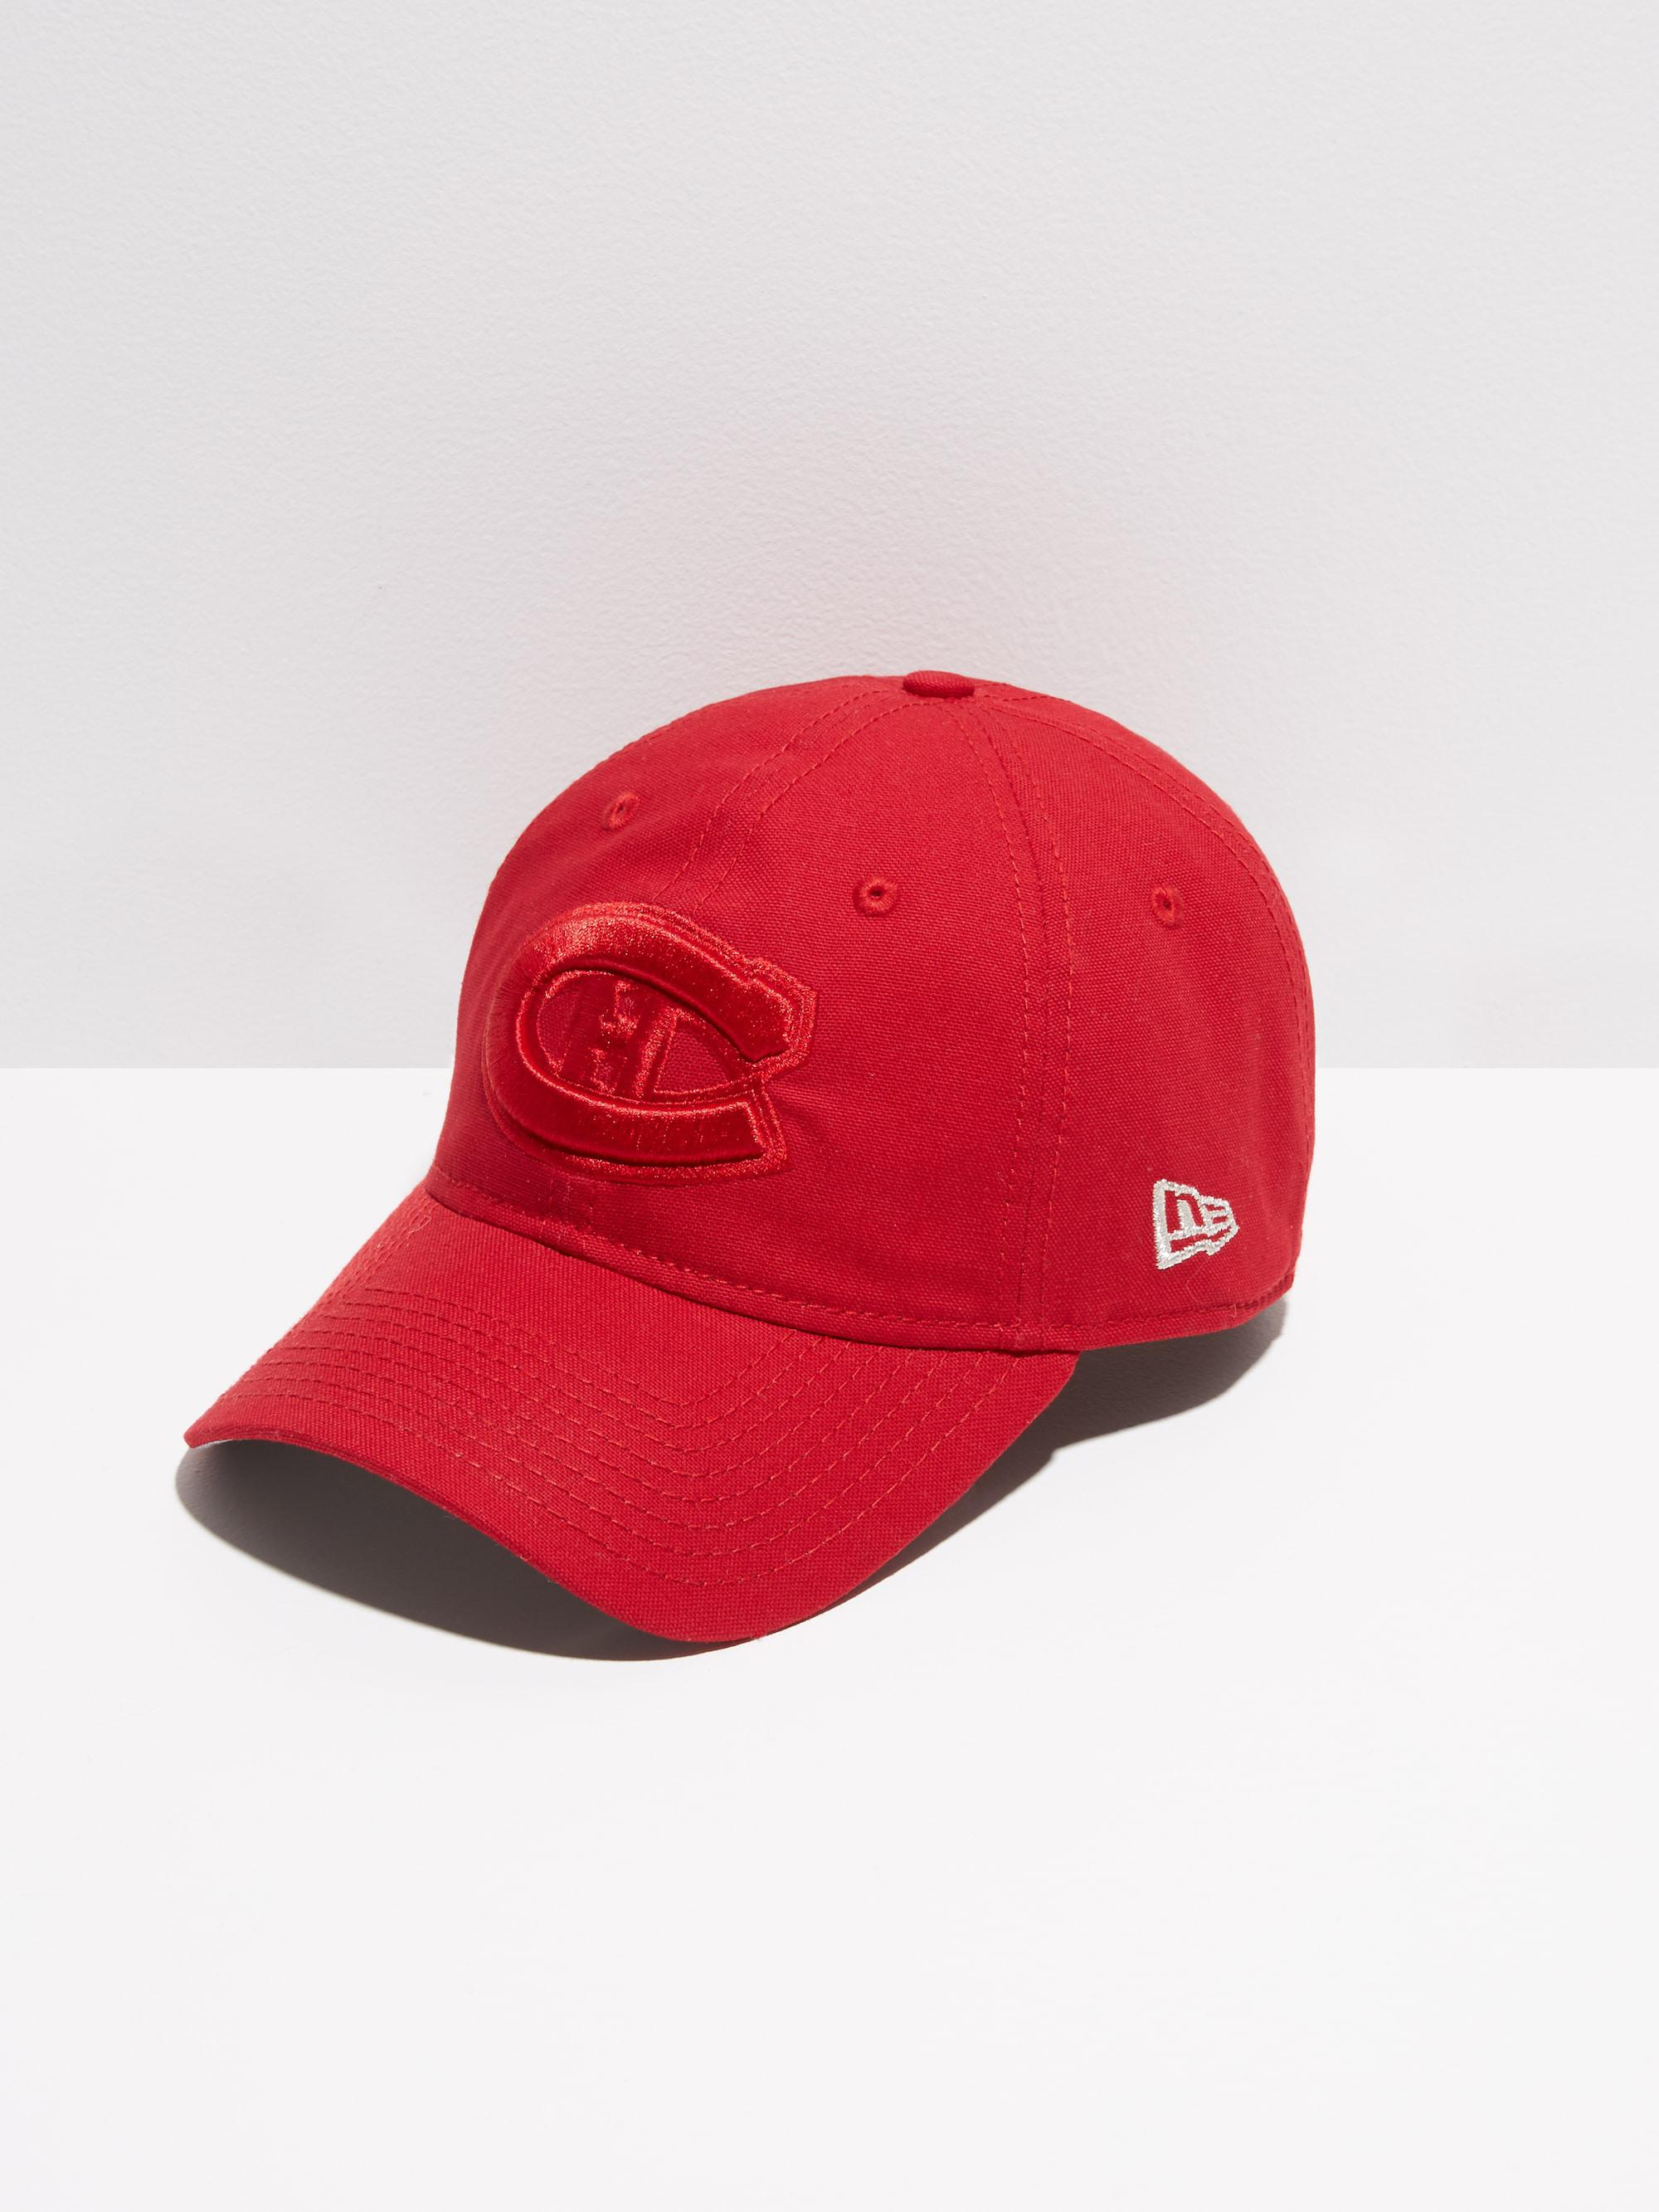 Lyst - Frank And Oak Montreal Canadiens Special Edition Cap In Red ... 2119b5ce1771